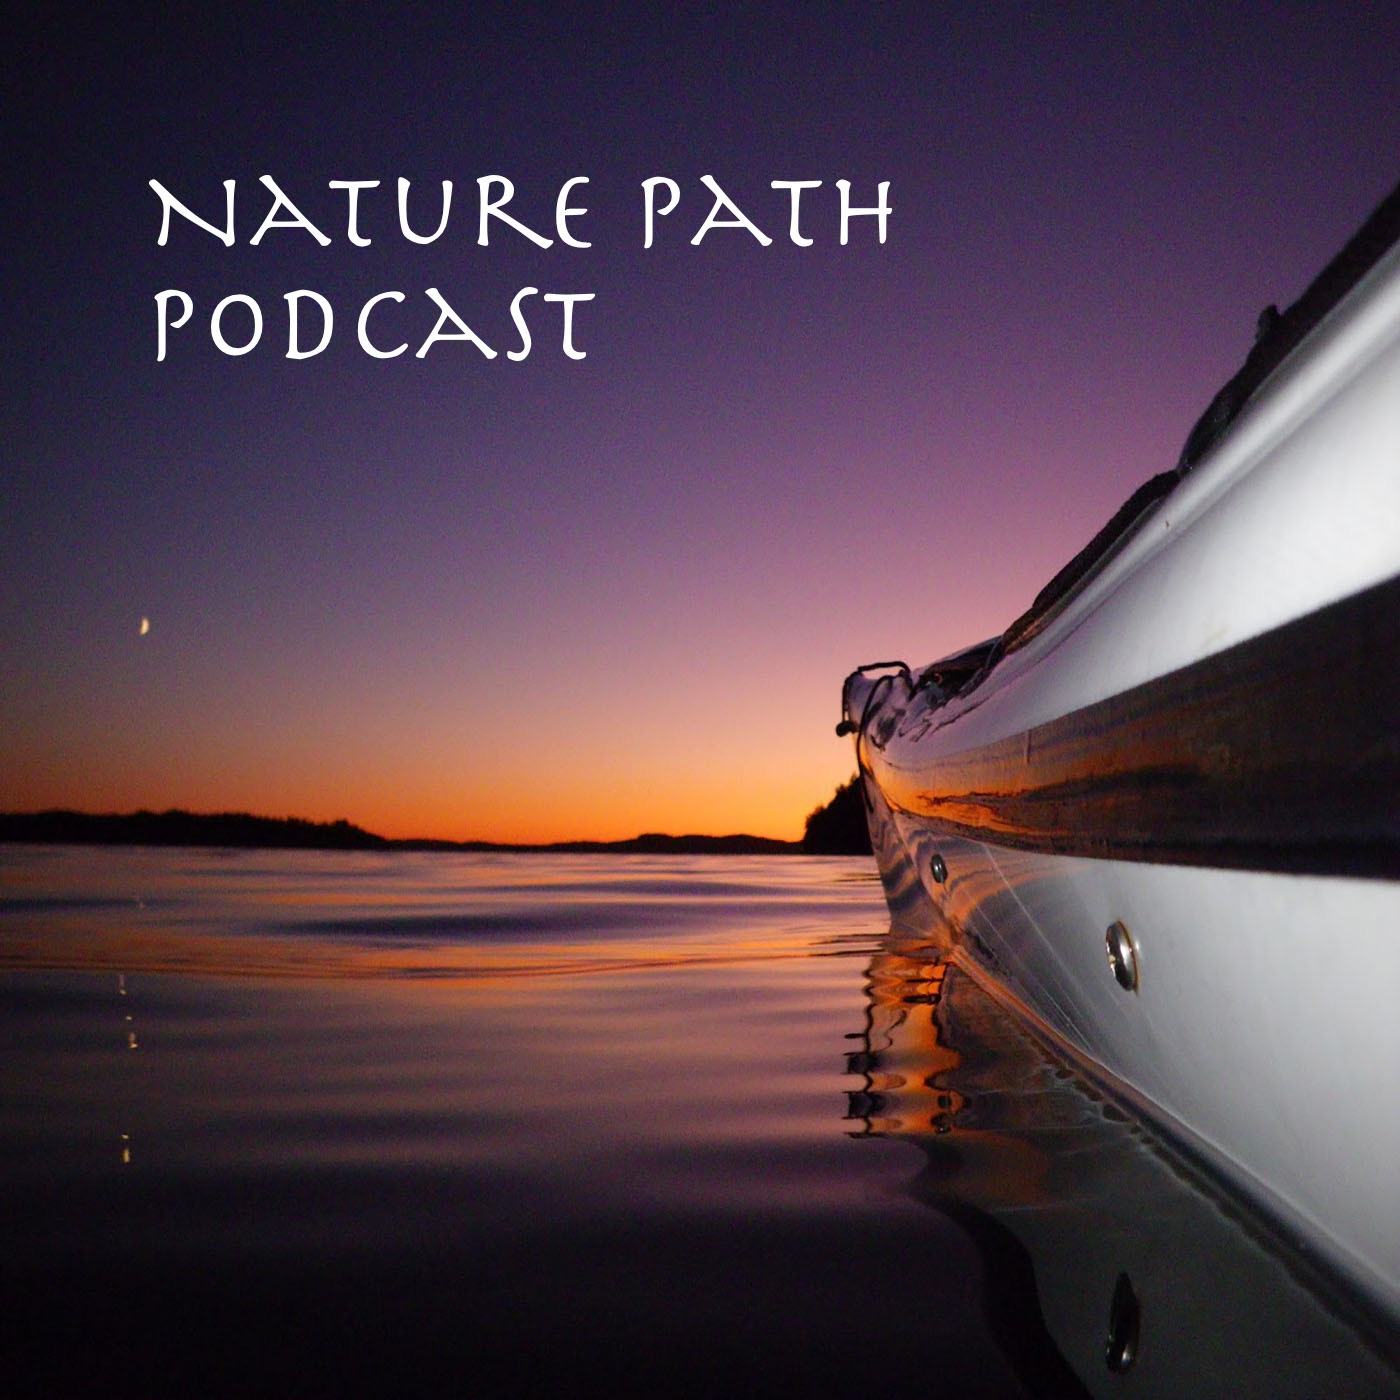 Nature Path Podcast